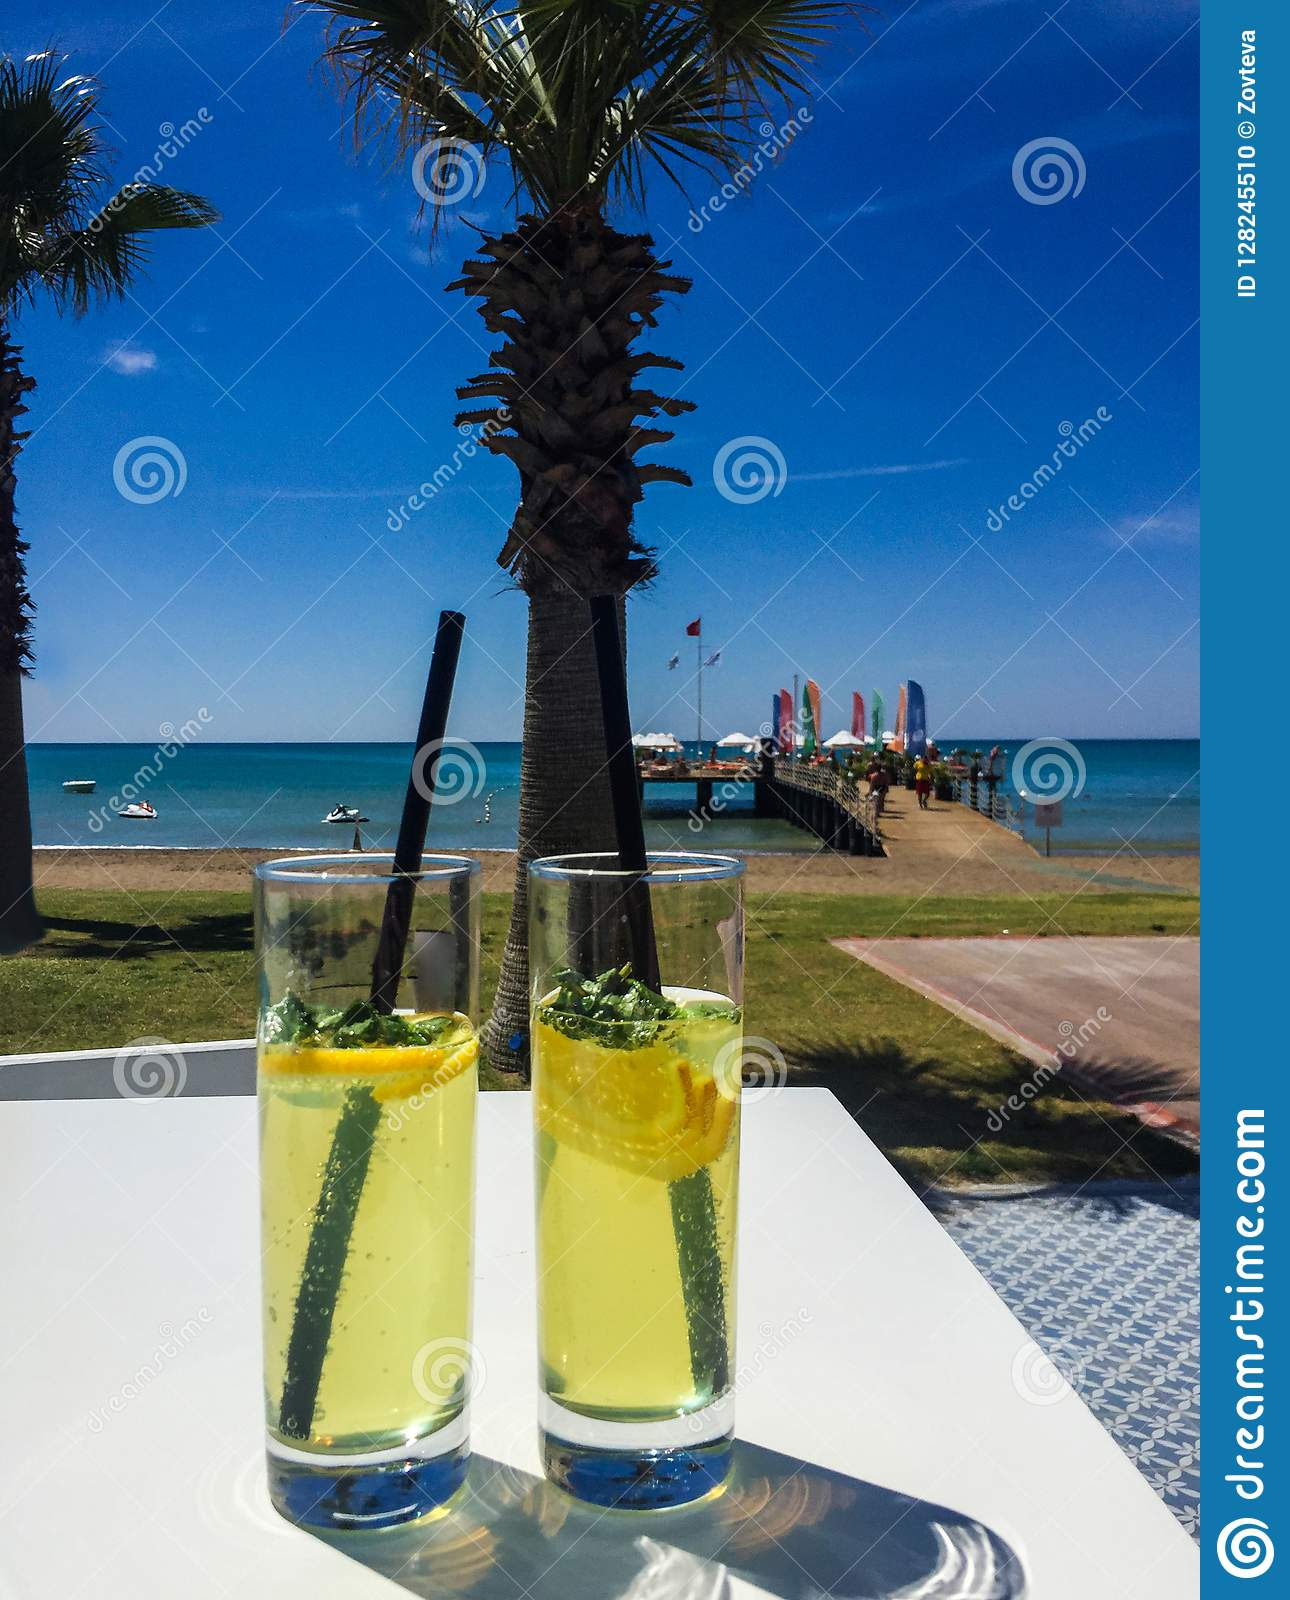 Two glasses on table, sea, palm